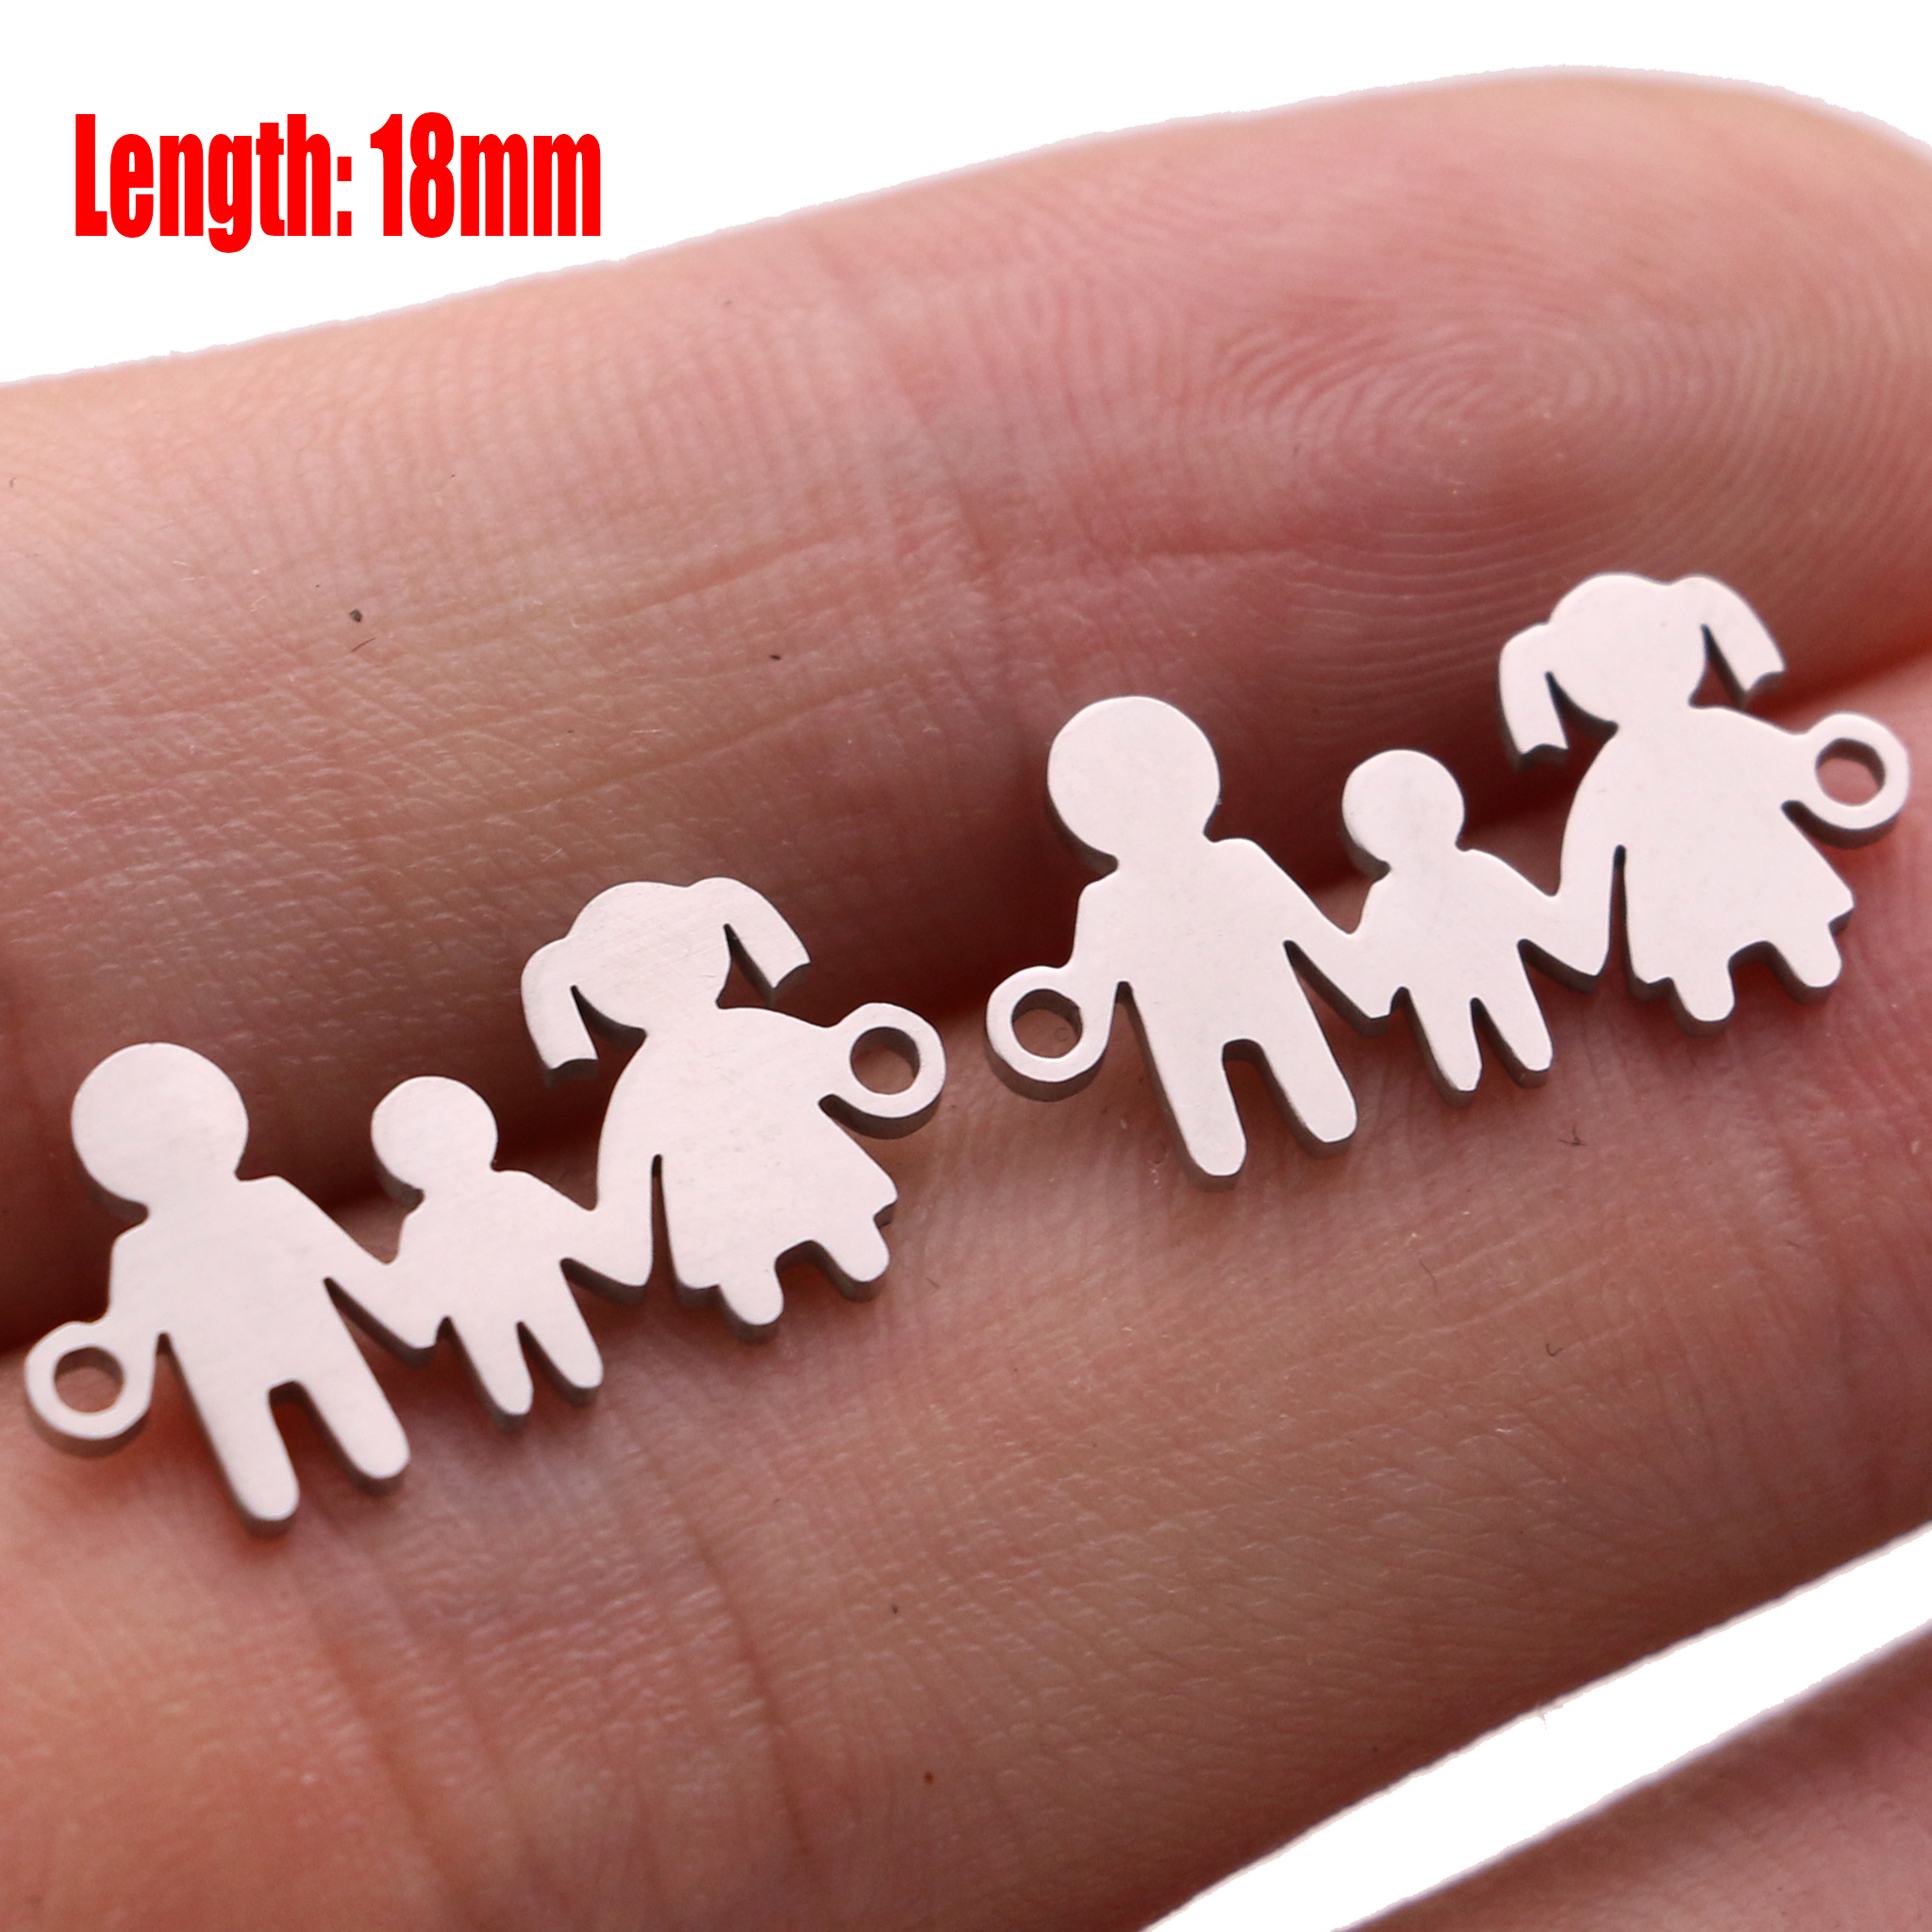 5pcs Family Chain Stainless Steel Pendant Necklace Parents and Children Necklaces Gold/steel Jewelry Gift for Mom Dad New Twice - Цвет: Steel 20